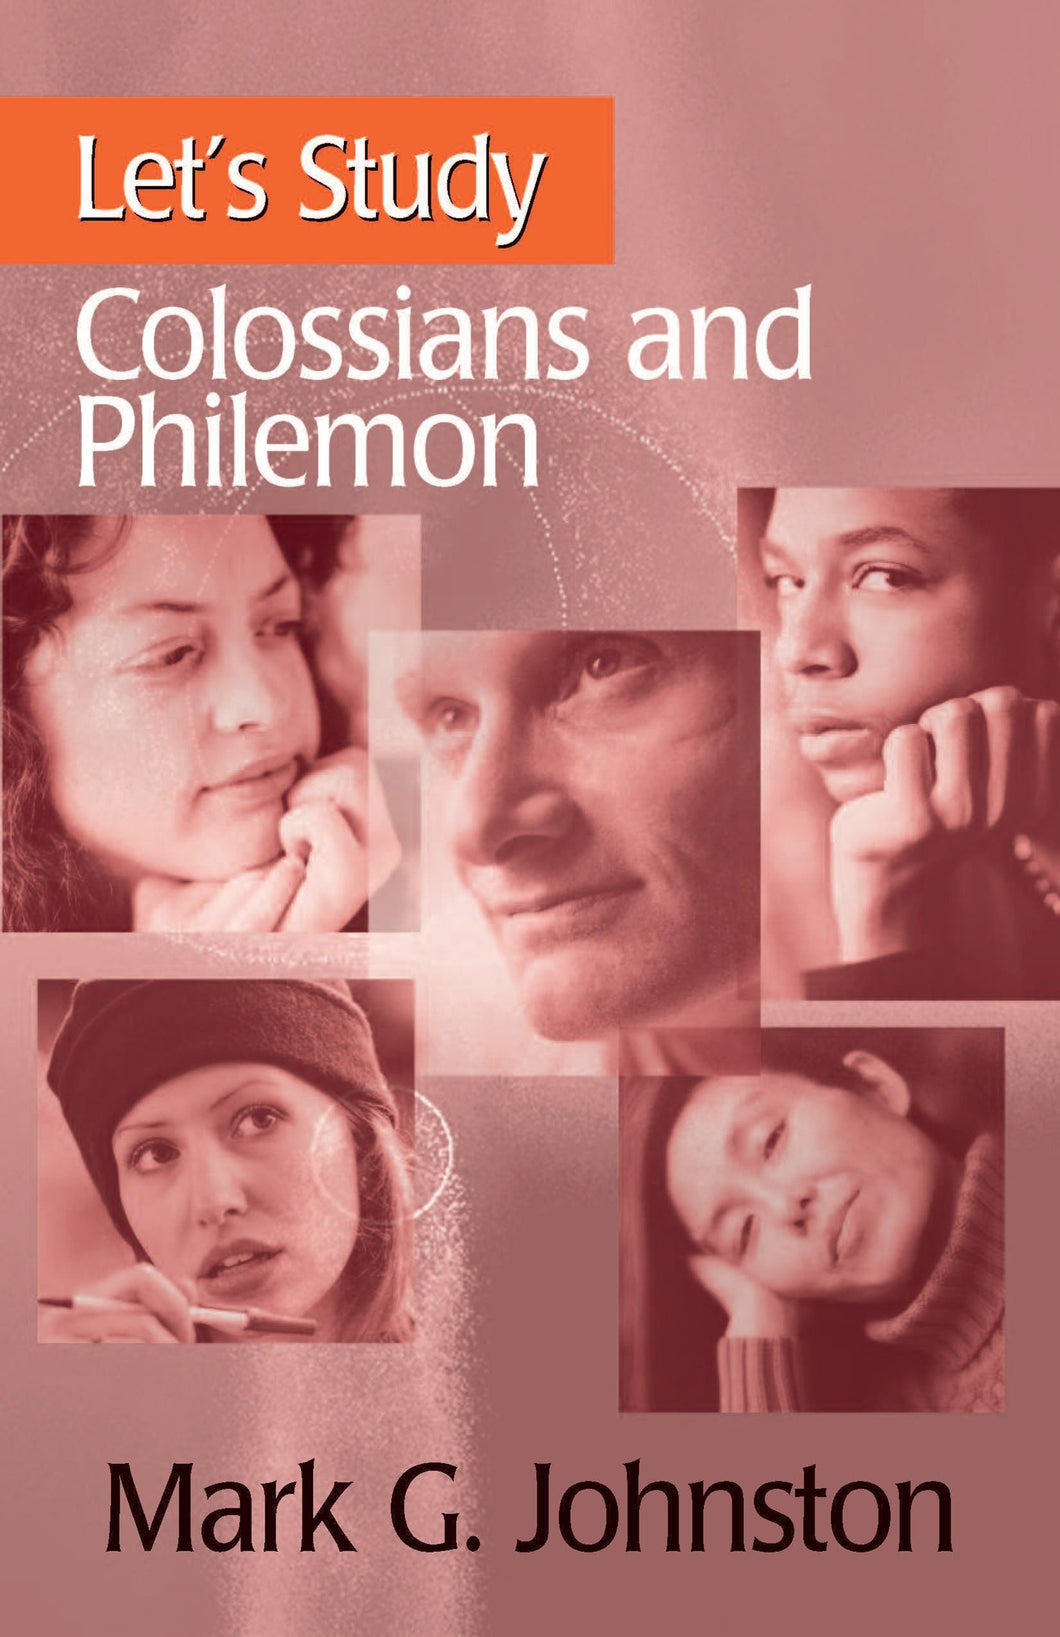 Let's Study Colossians and Philemon — Paperback